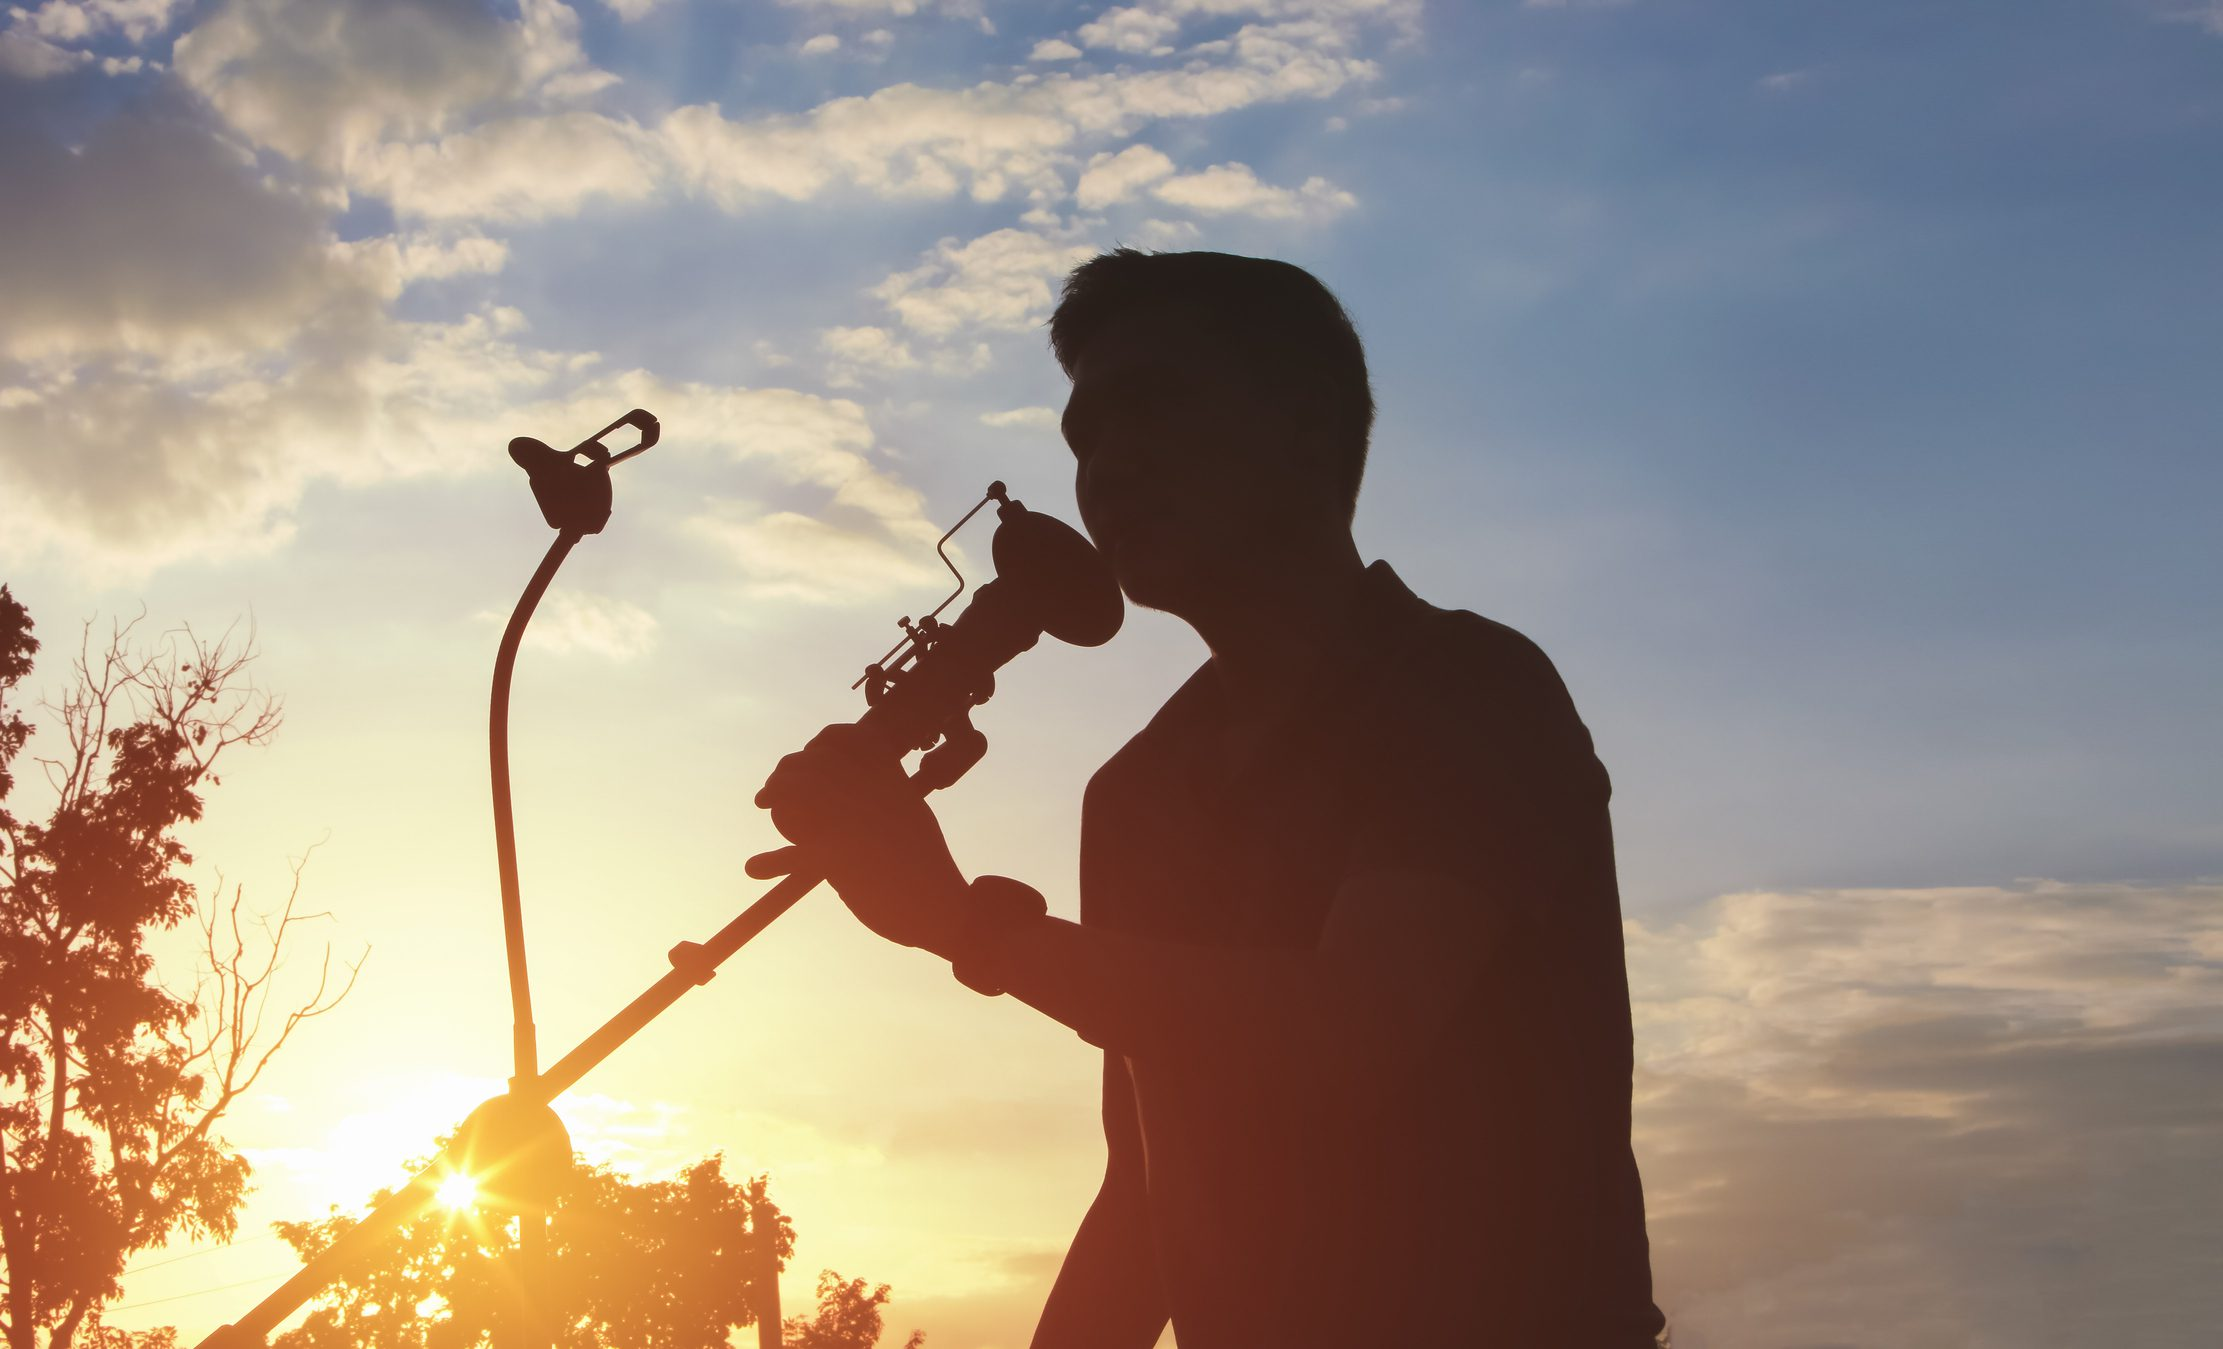 Silhouette of Singer holding a microphone stand and performing outdoor.